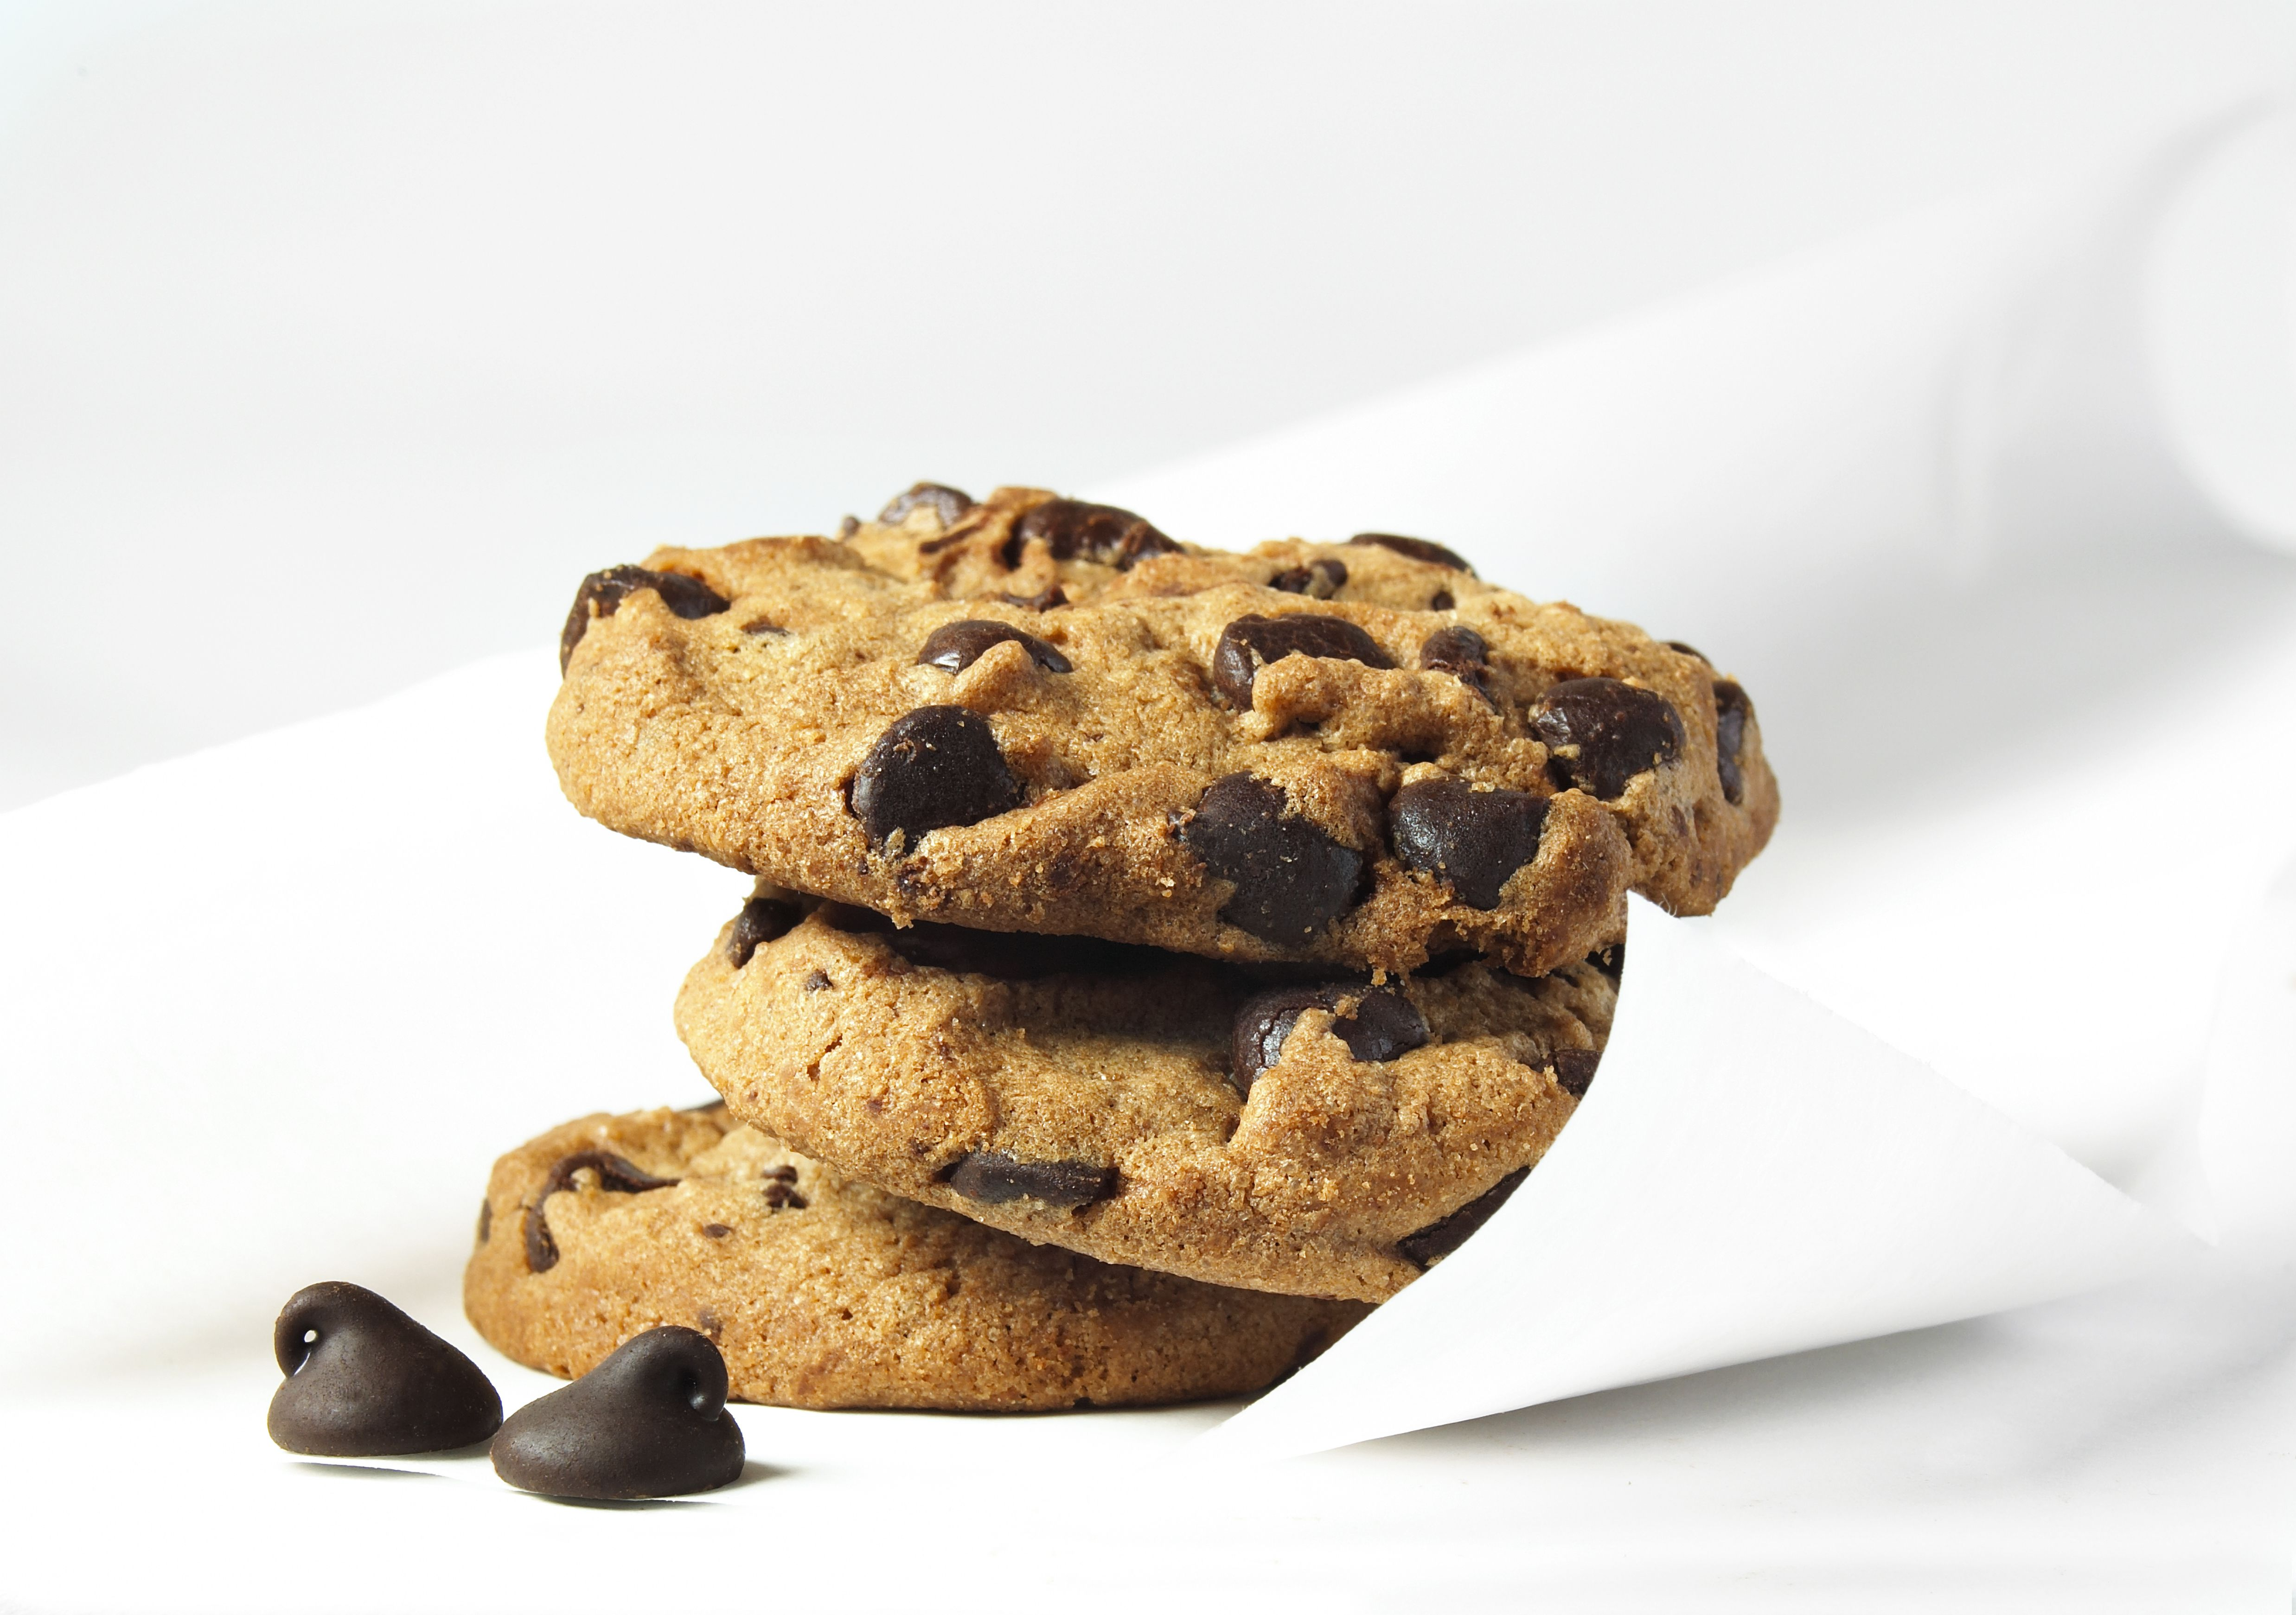 Make the Real Neiman Marcus Chocolate Chip Cookies